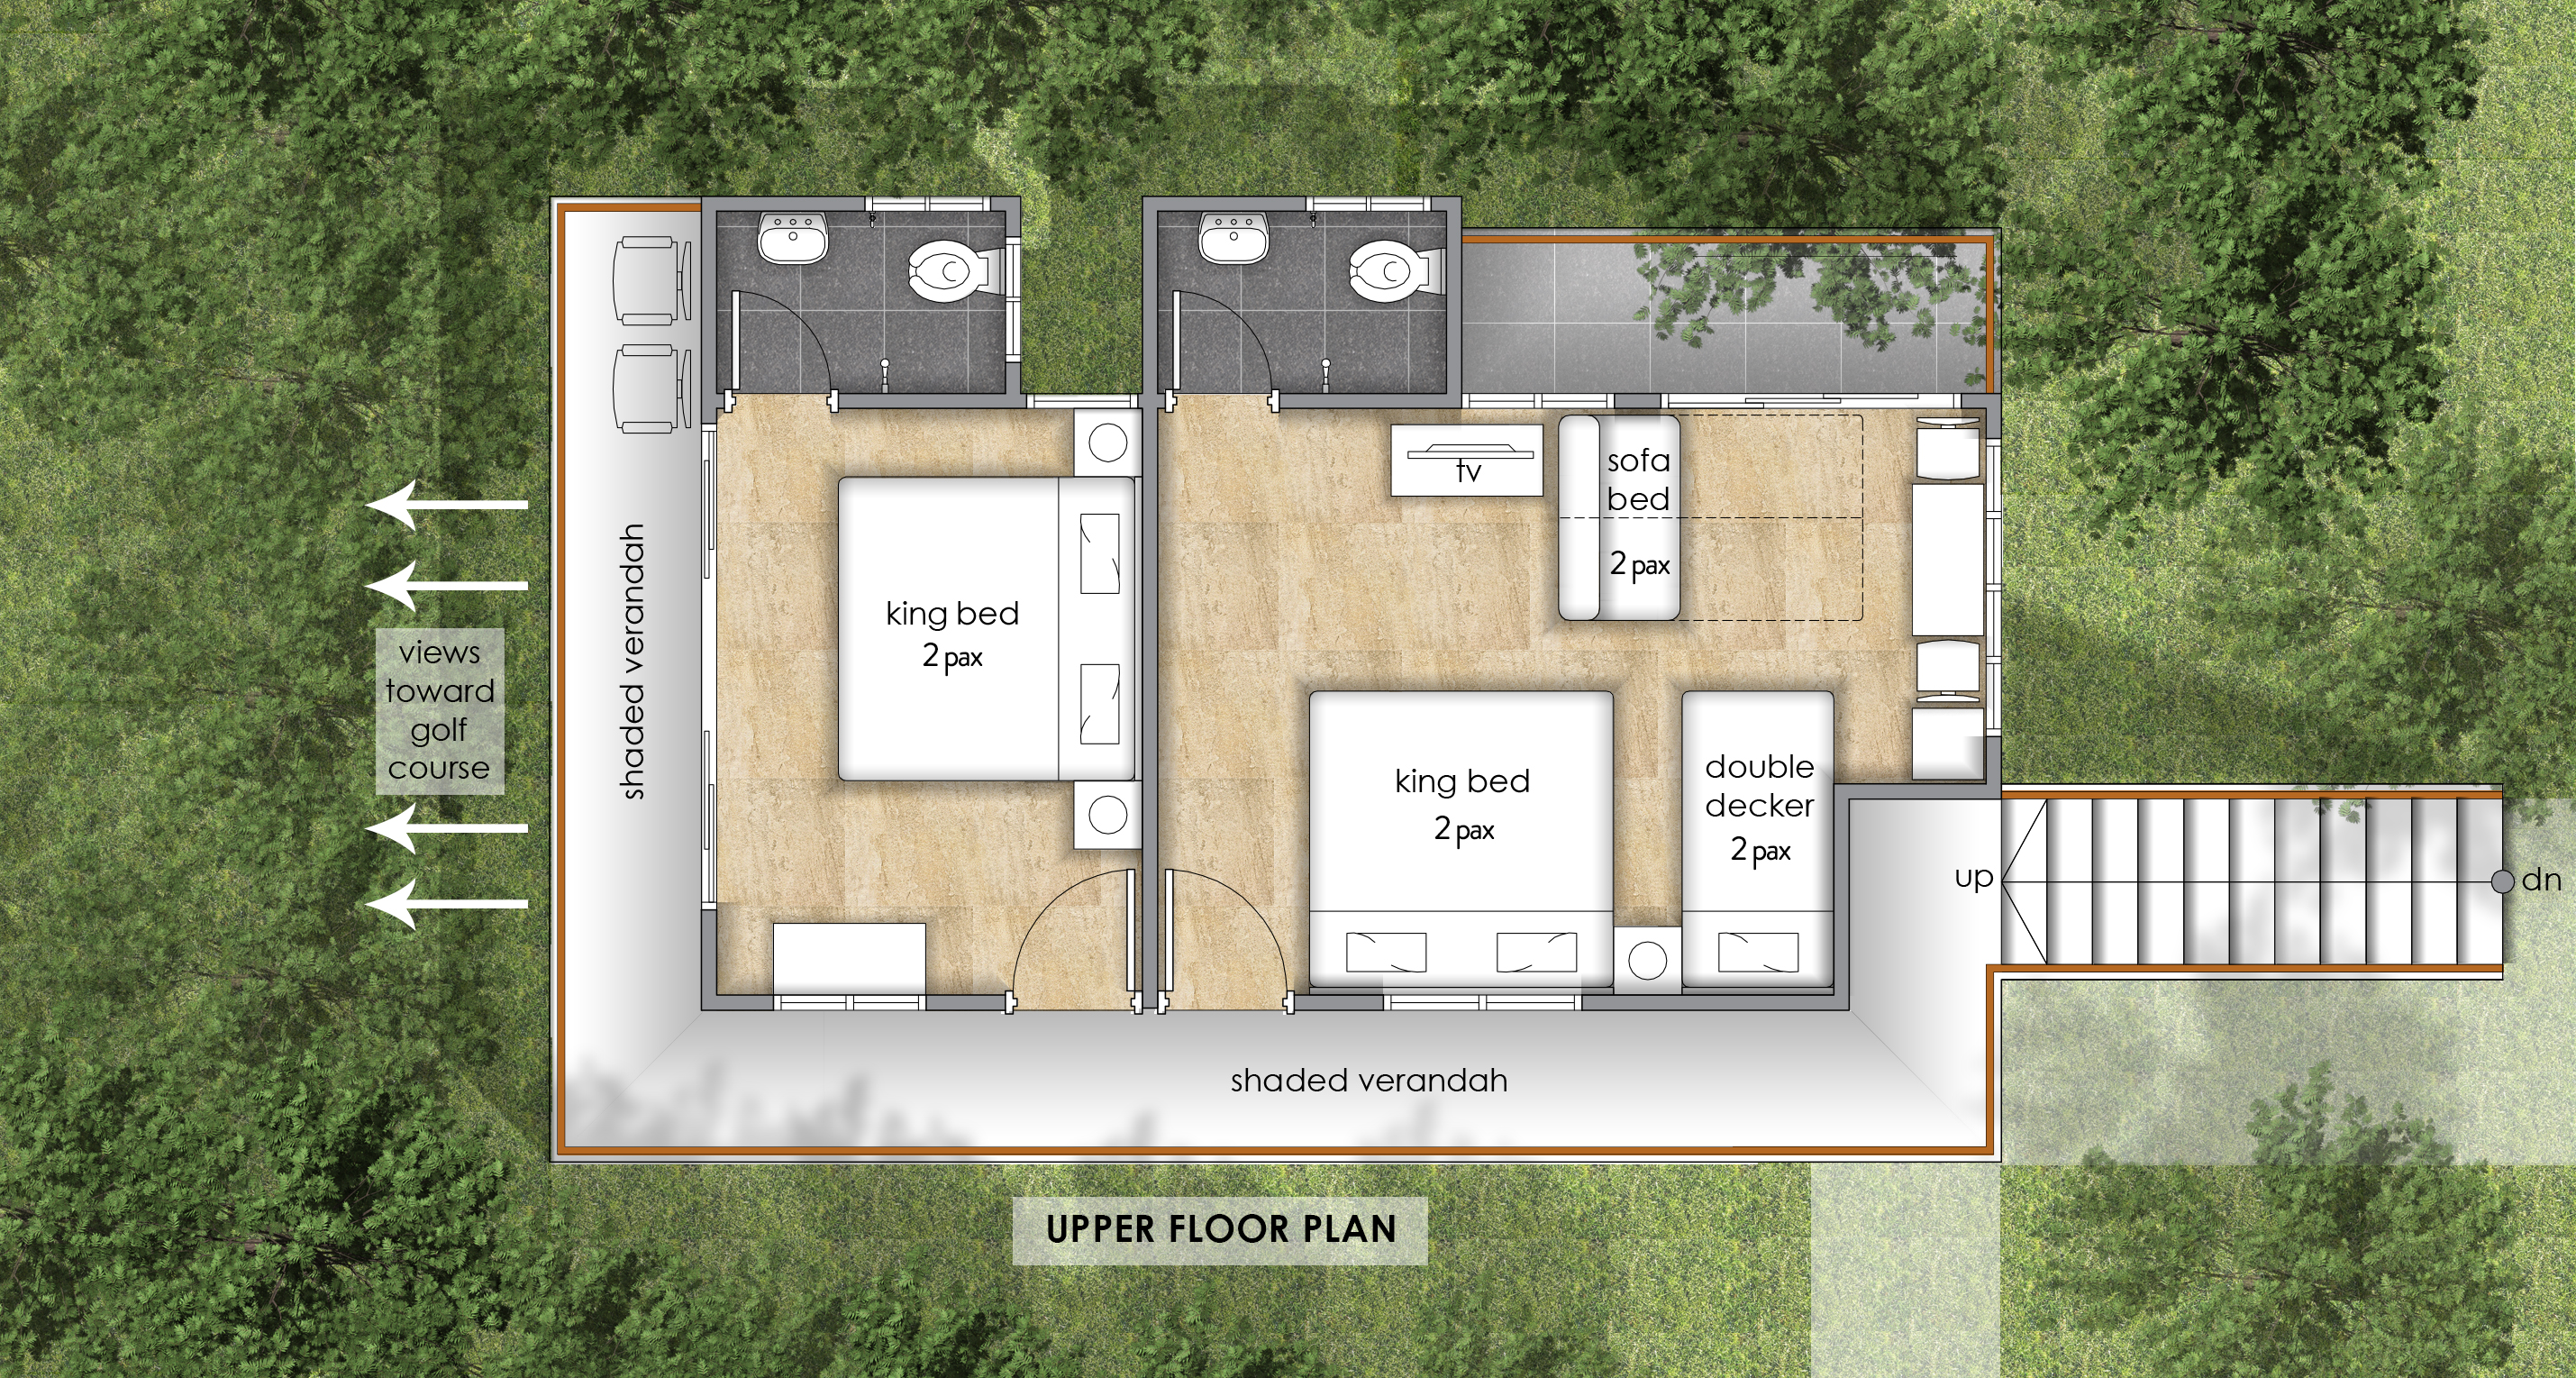 Upper Floor Plan v2